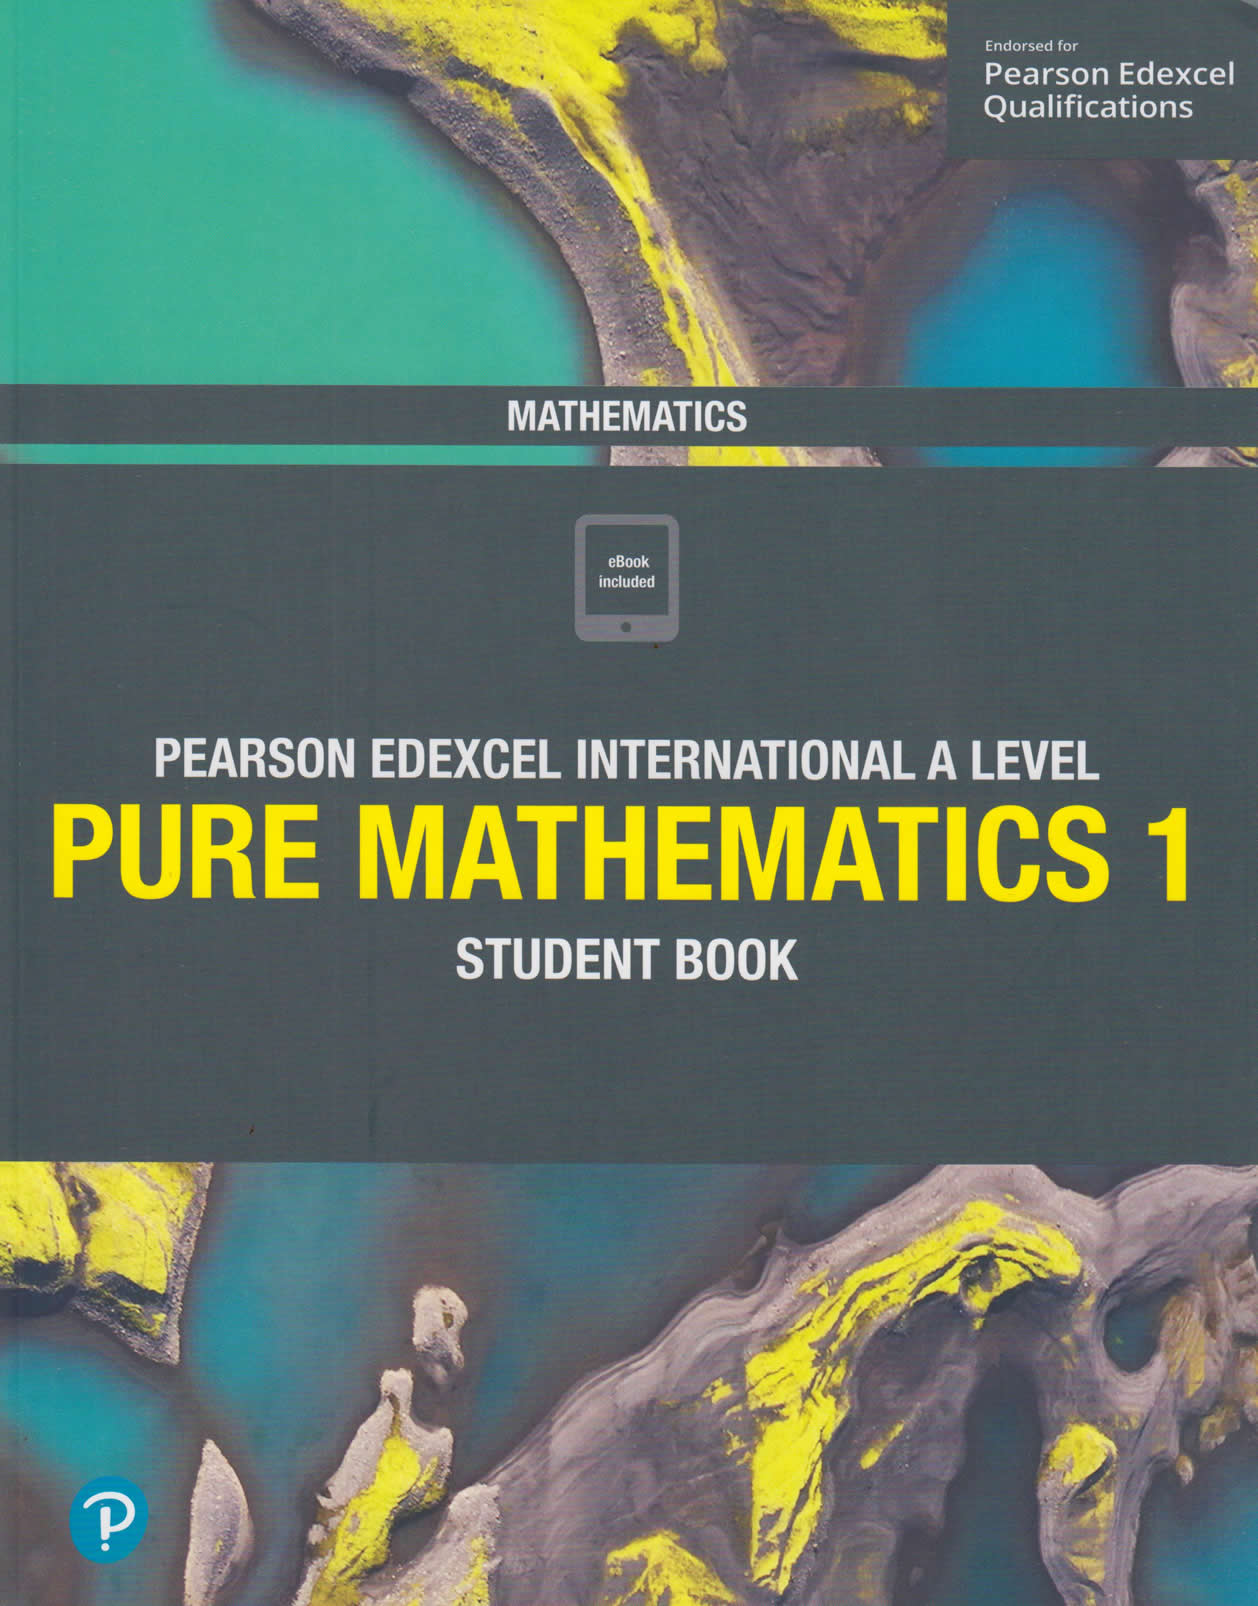 Pearson Edexcel Internatioonal A Level Pure Mathematics 1 Student Book |  Books, Stationery, Computers, Laptops and more  Buy online and get free